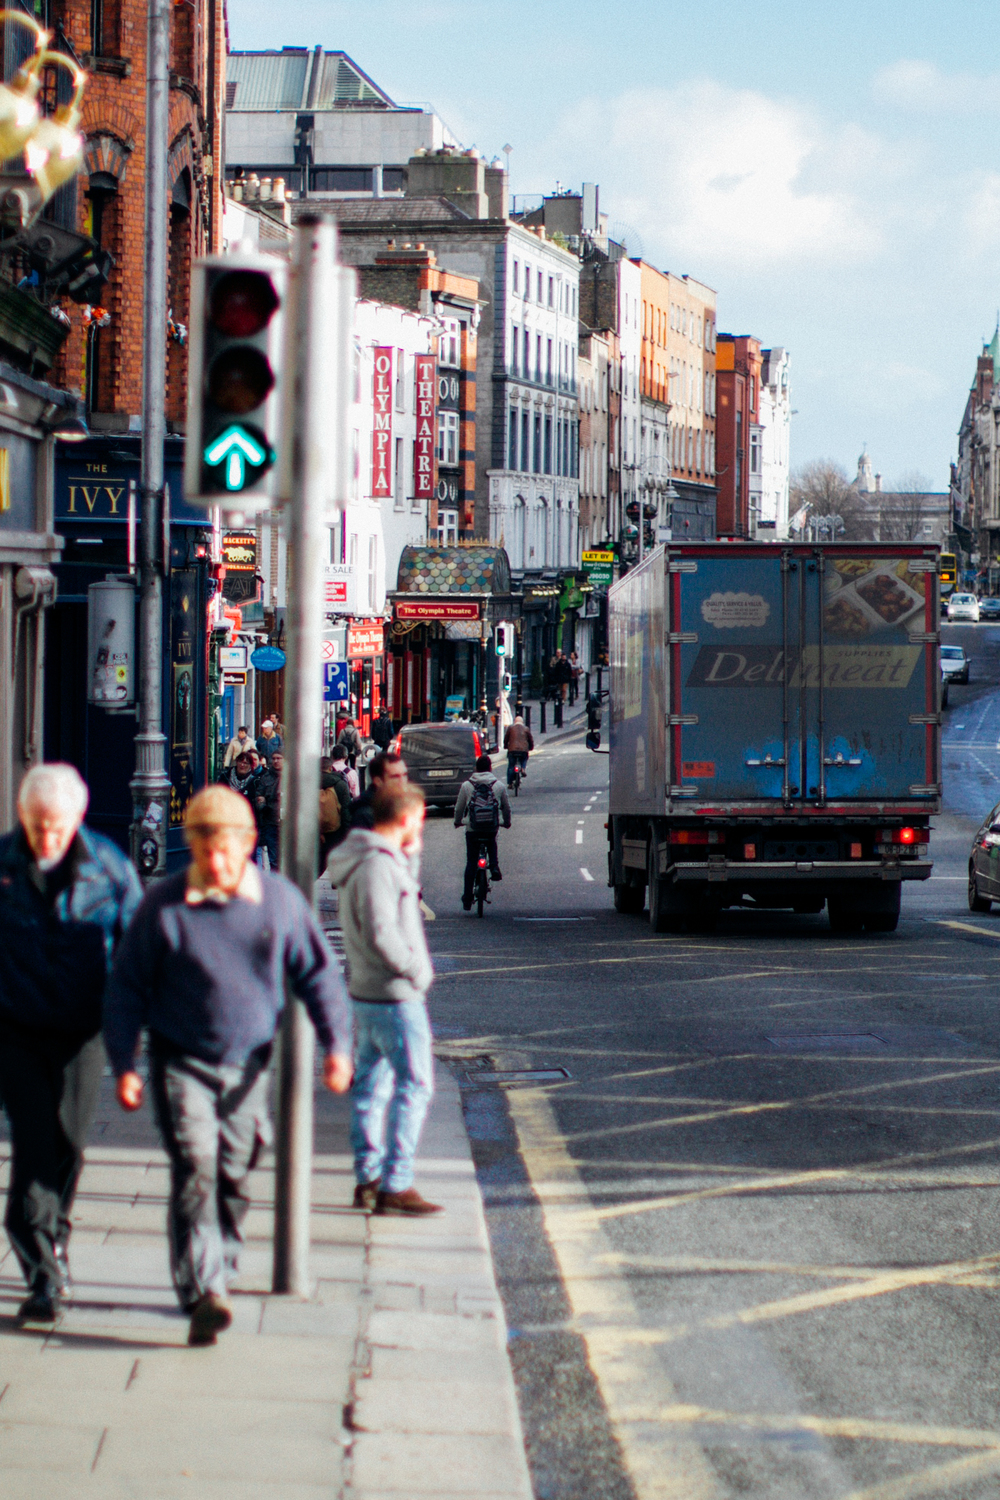 the streets of dublin. when we arrived it was beautifully bright and sunny!